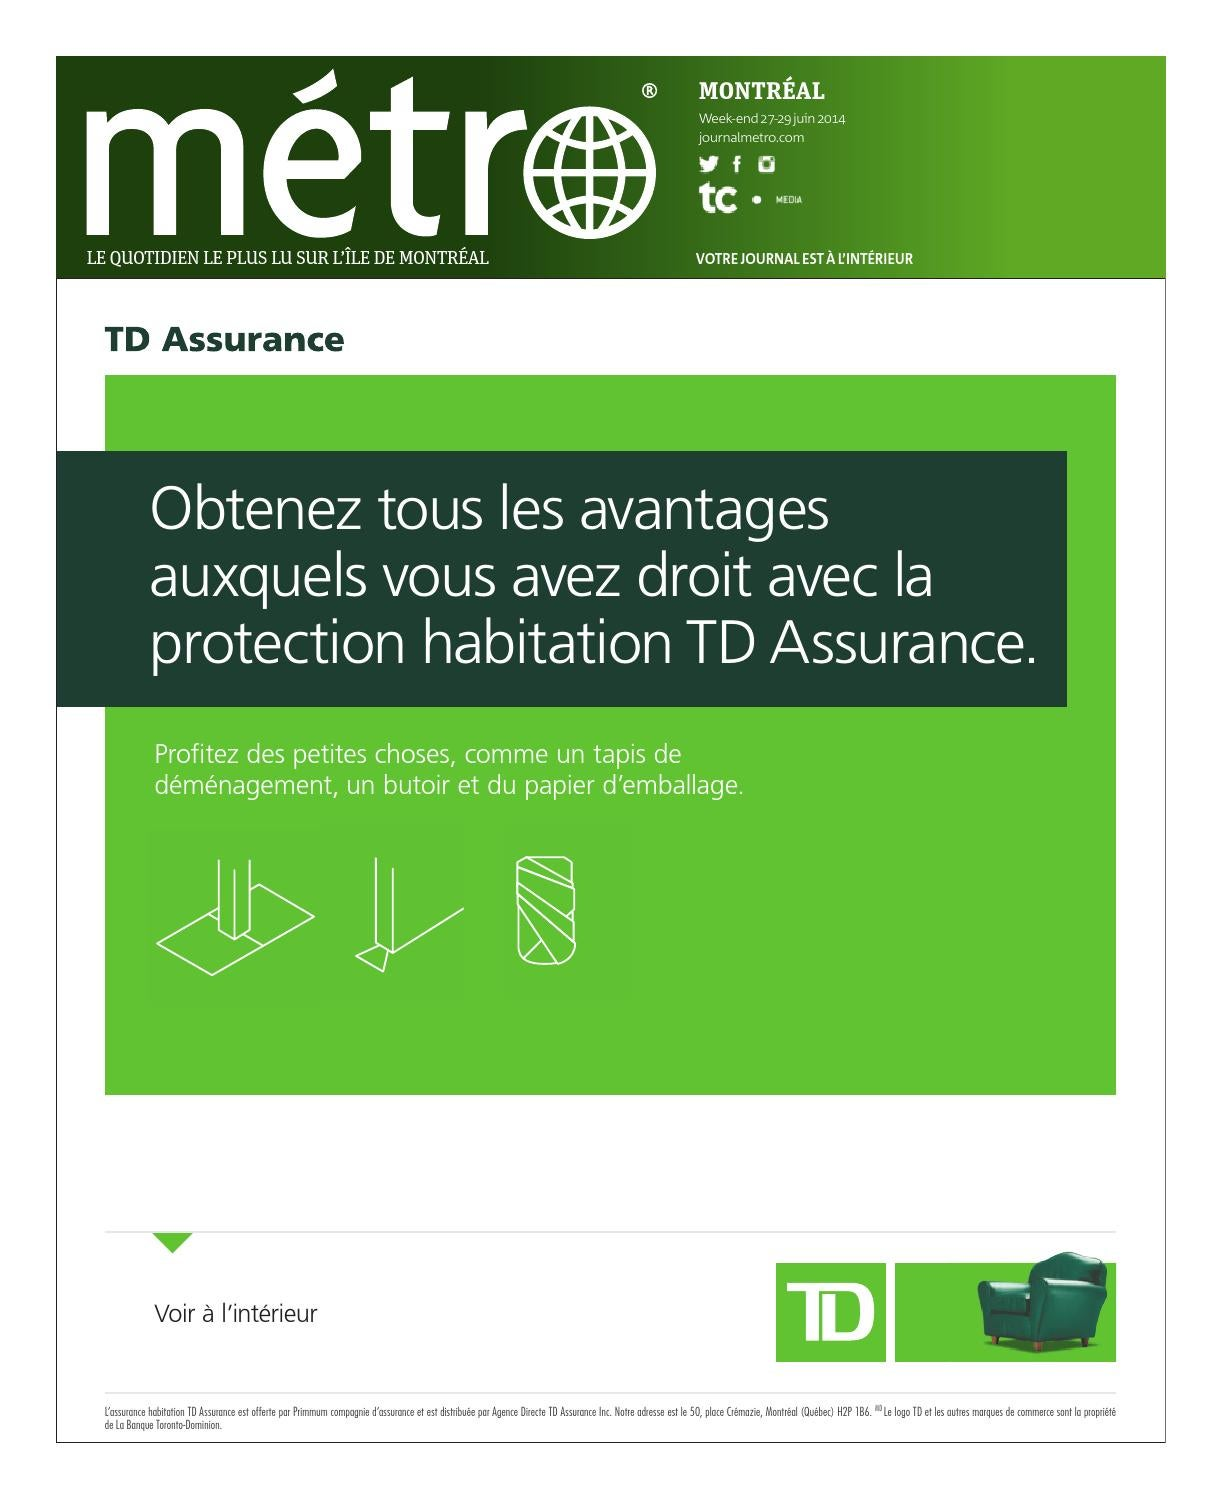 20140627 ca montreal by metro canada issuu for Assurance maison montreal